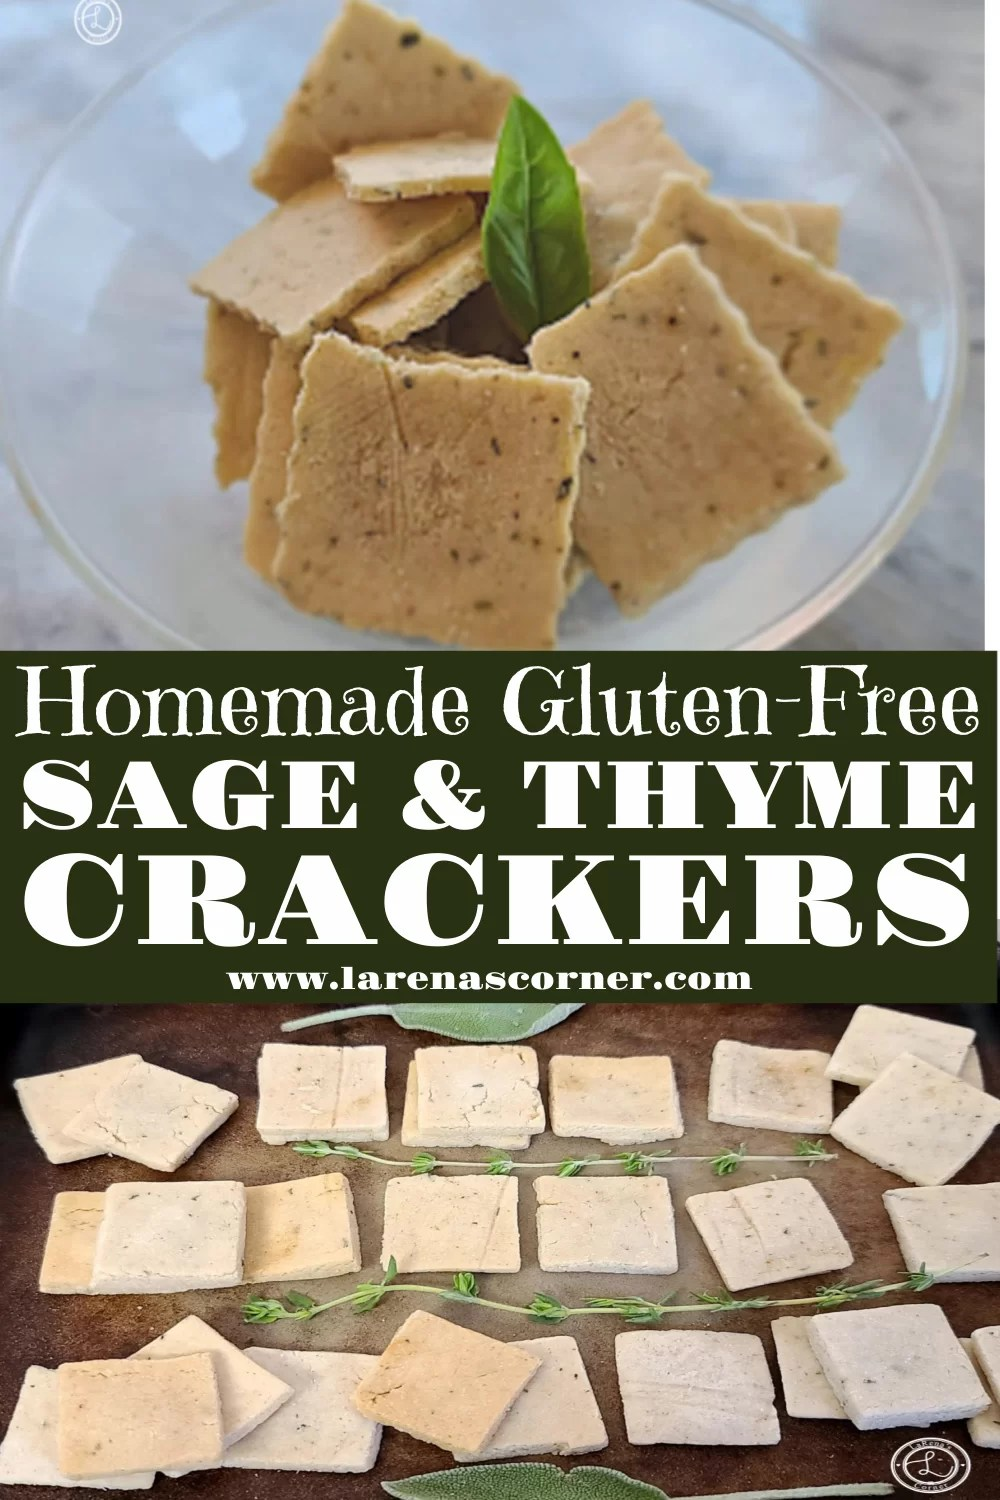 Gluten-Free Sage & Thyme Crackers. Two Pictures of the crackers. One of the crackers in a bowl and one on a stone baking sheet.